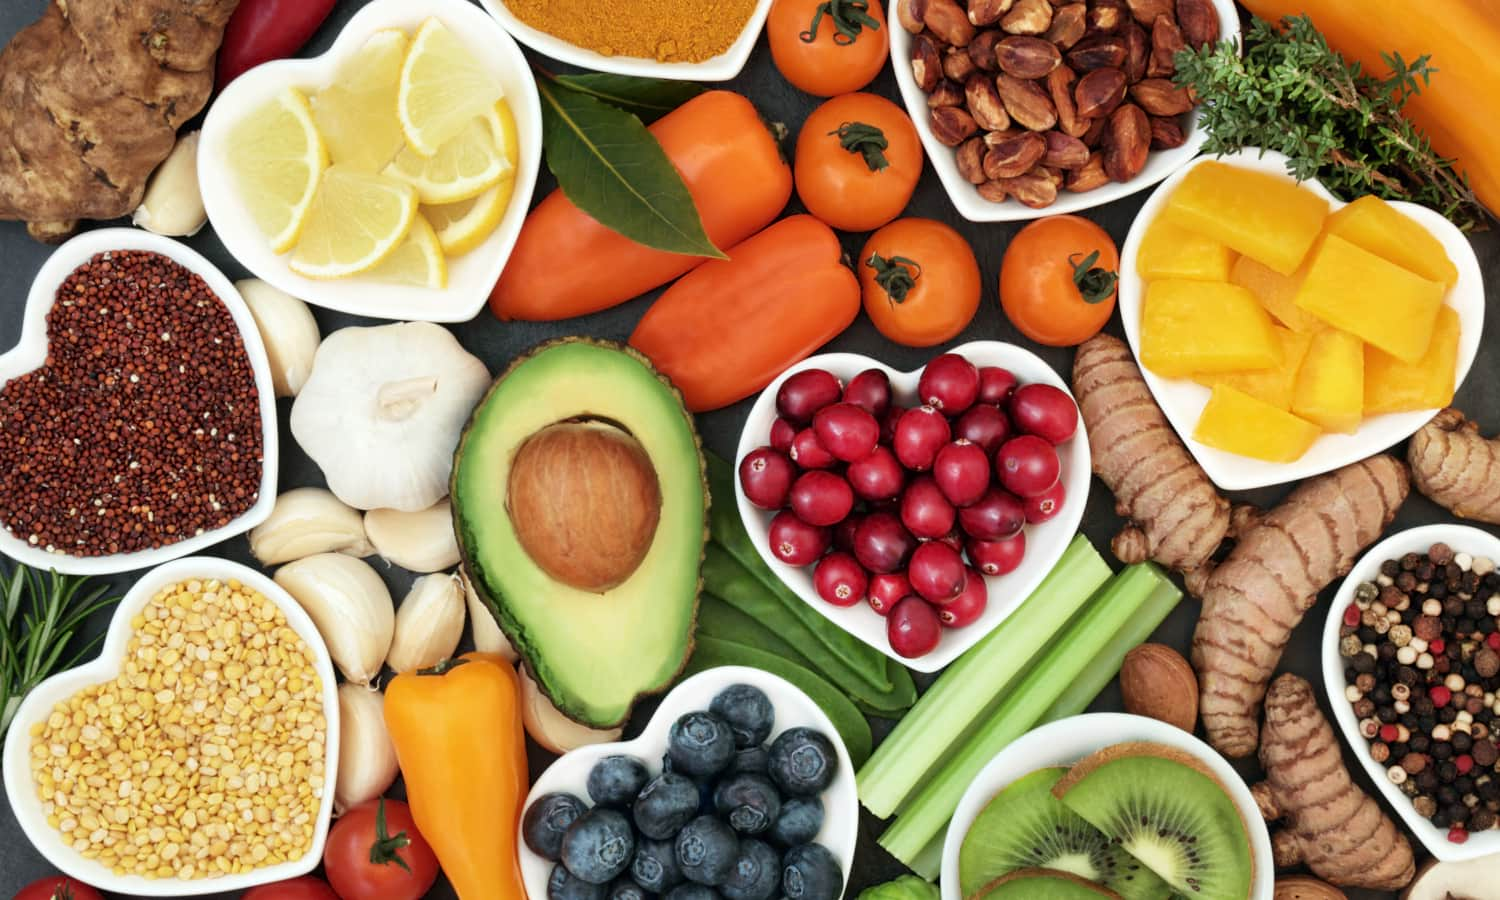 Supporting Healthy Eating Through a Mediterranean Diet